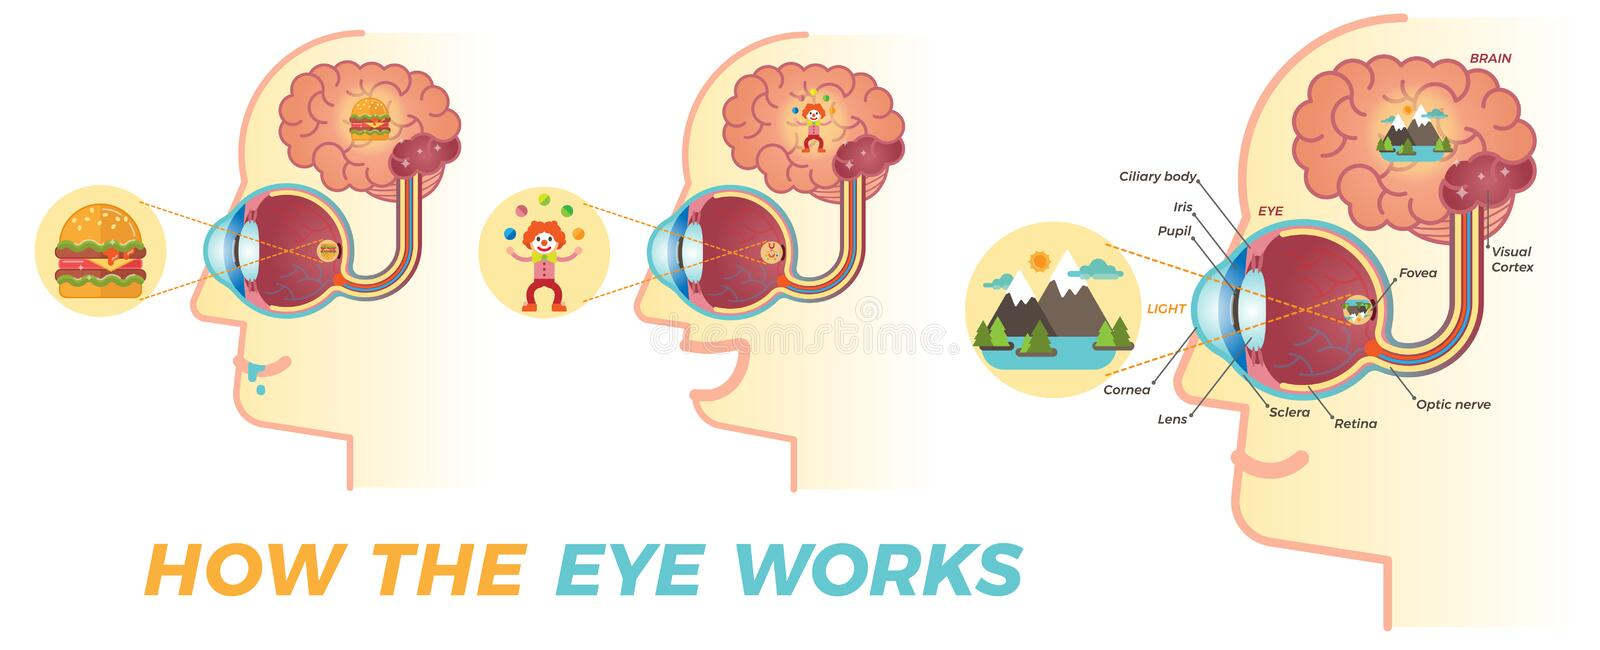 How the eye works. Basic graphic elements for building educational material about the eyes. Three different variations stock illustration